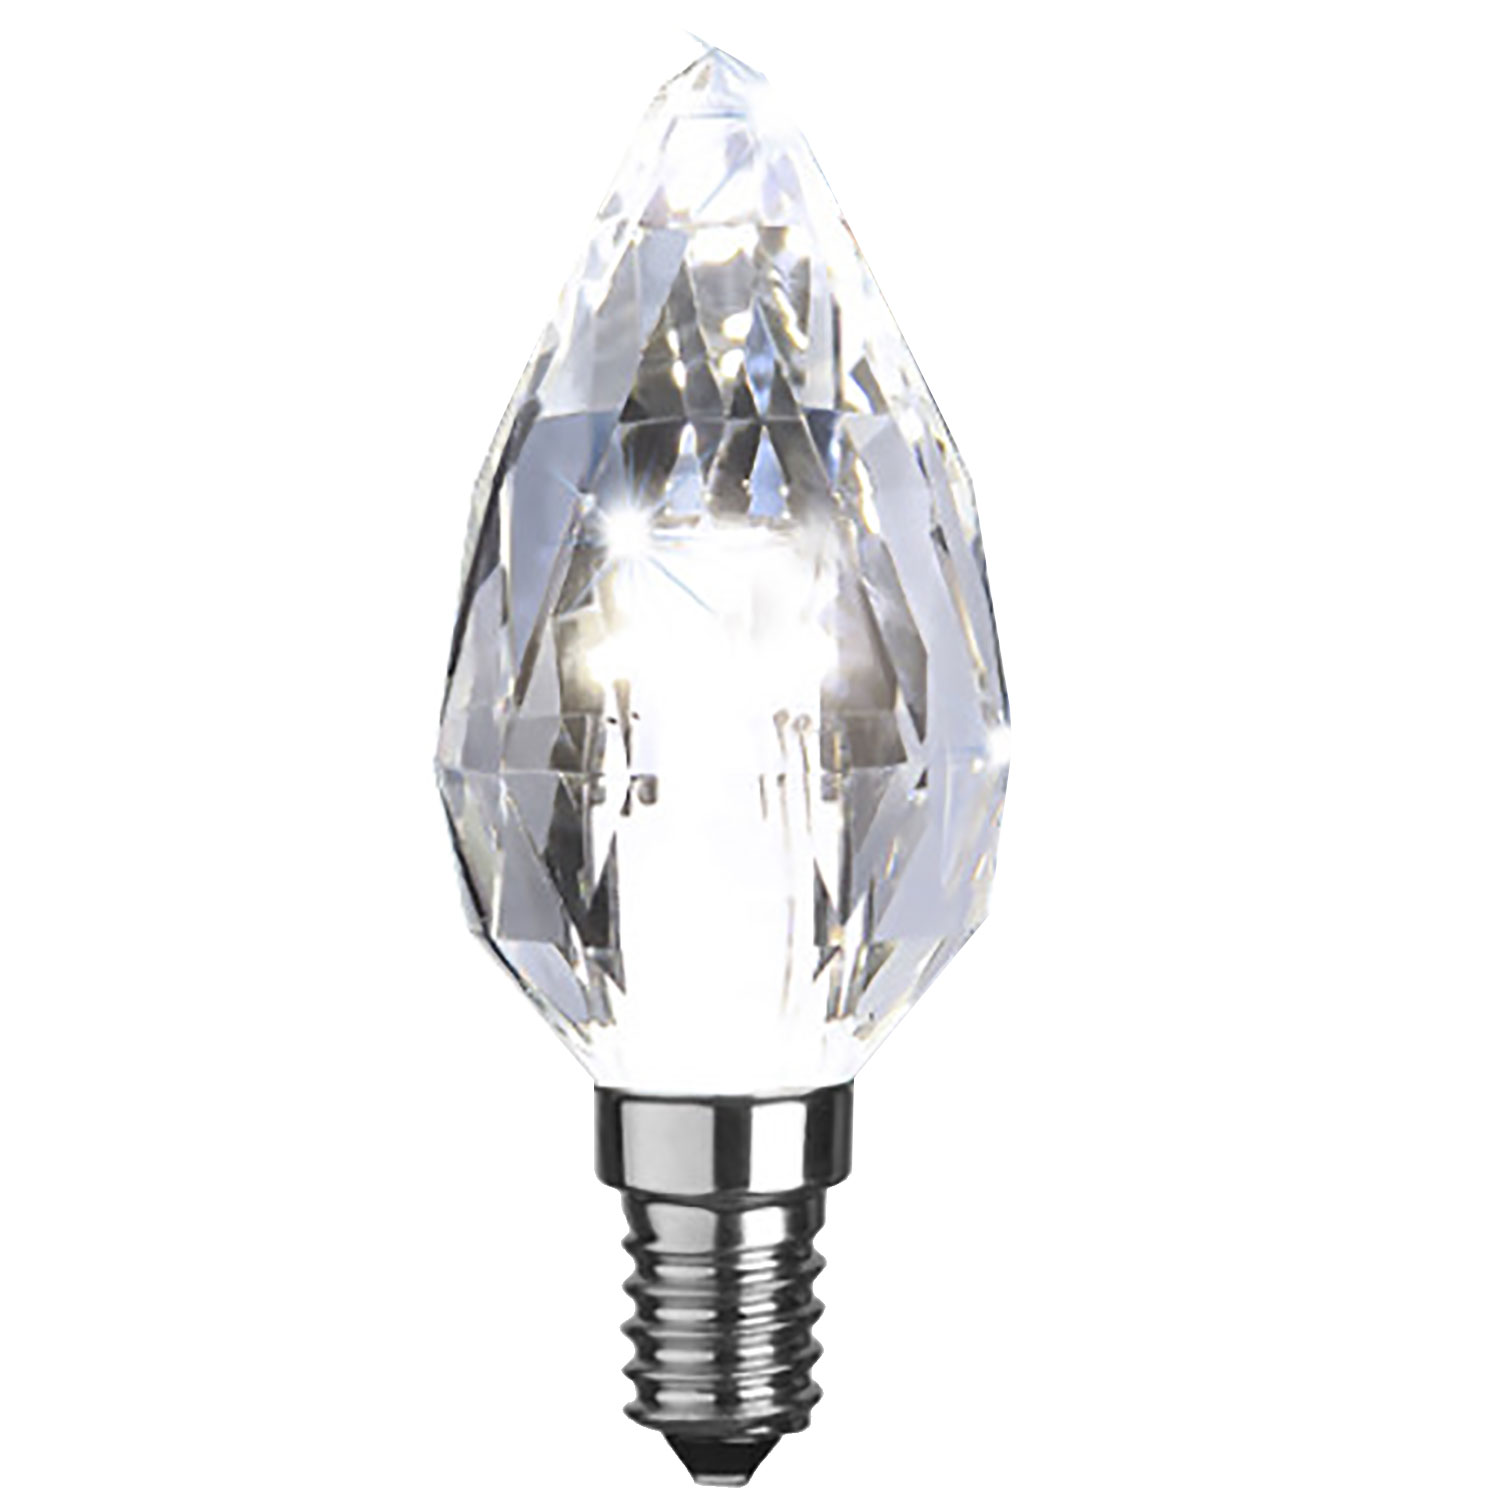 LED-lampa E14 C35 diamond, transparent